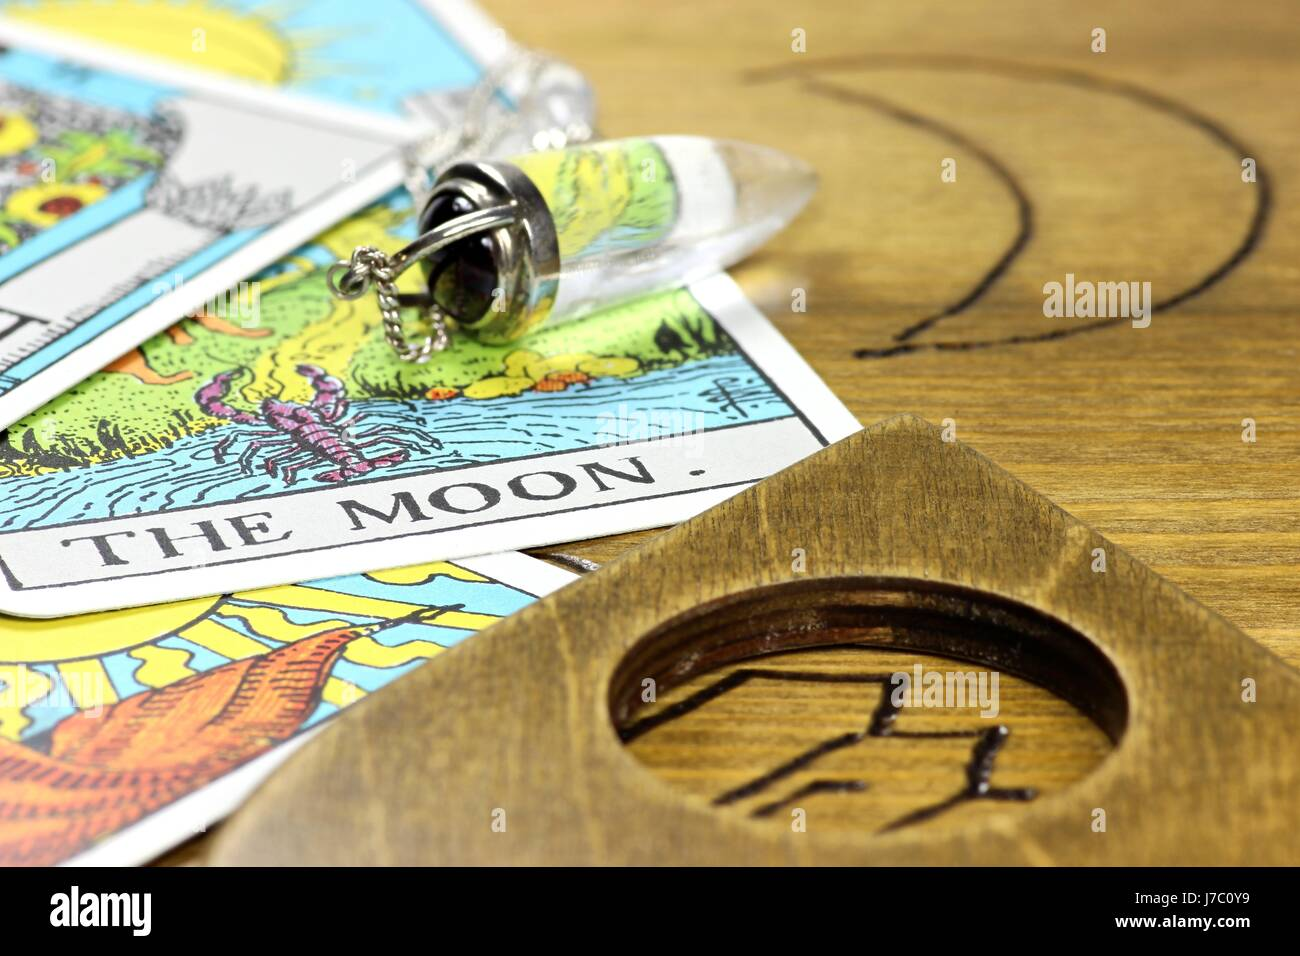 the moon shown by fortune telling accessories - Stock Image